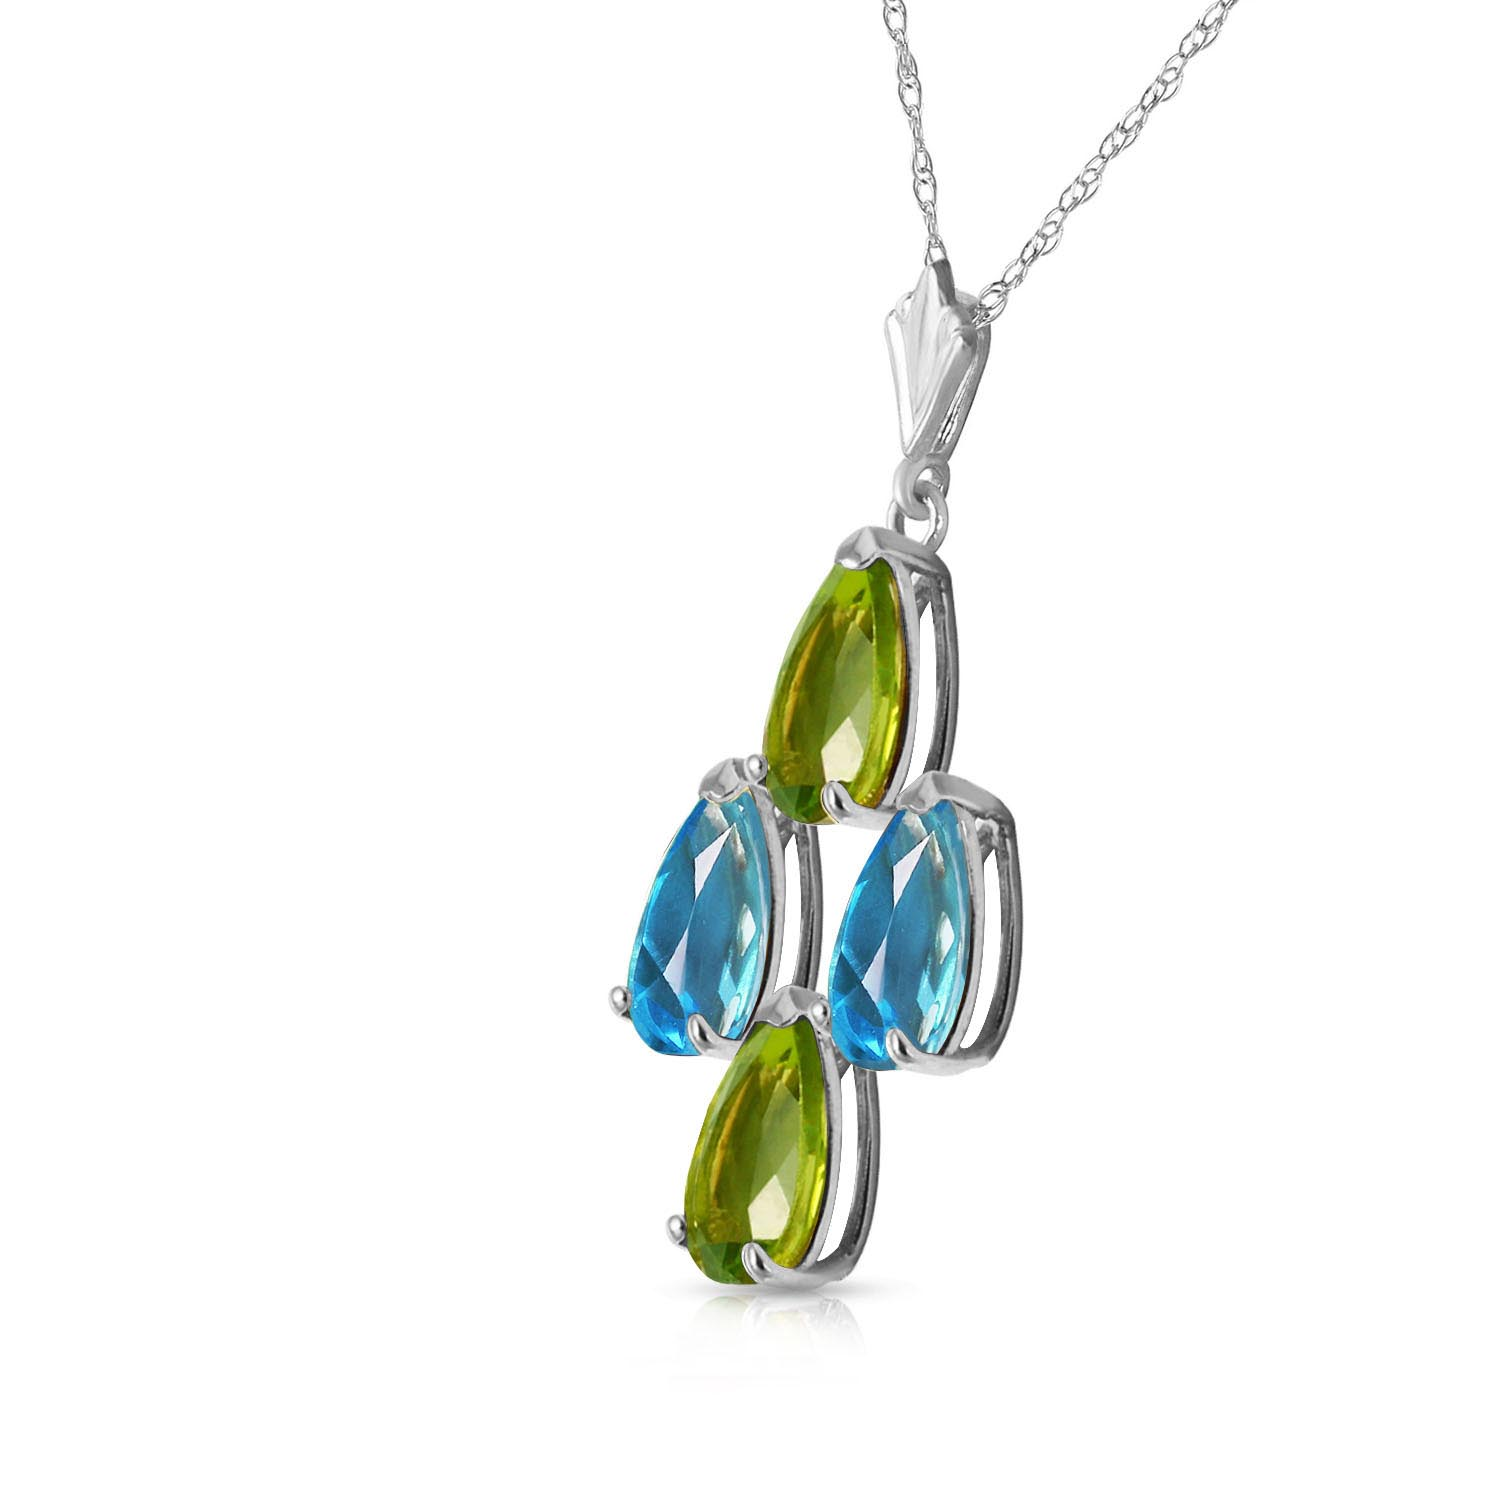 Peridot and Blue Topaz Pendant Necklace 1.5ctw in 14K White Gold